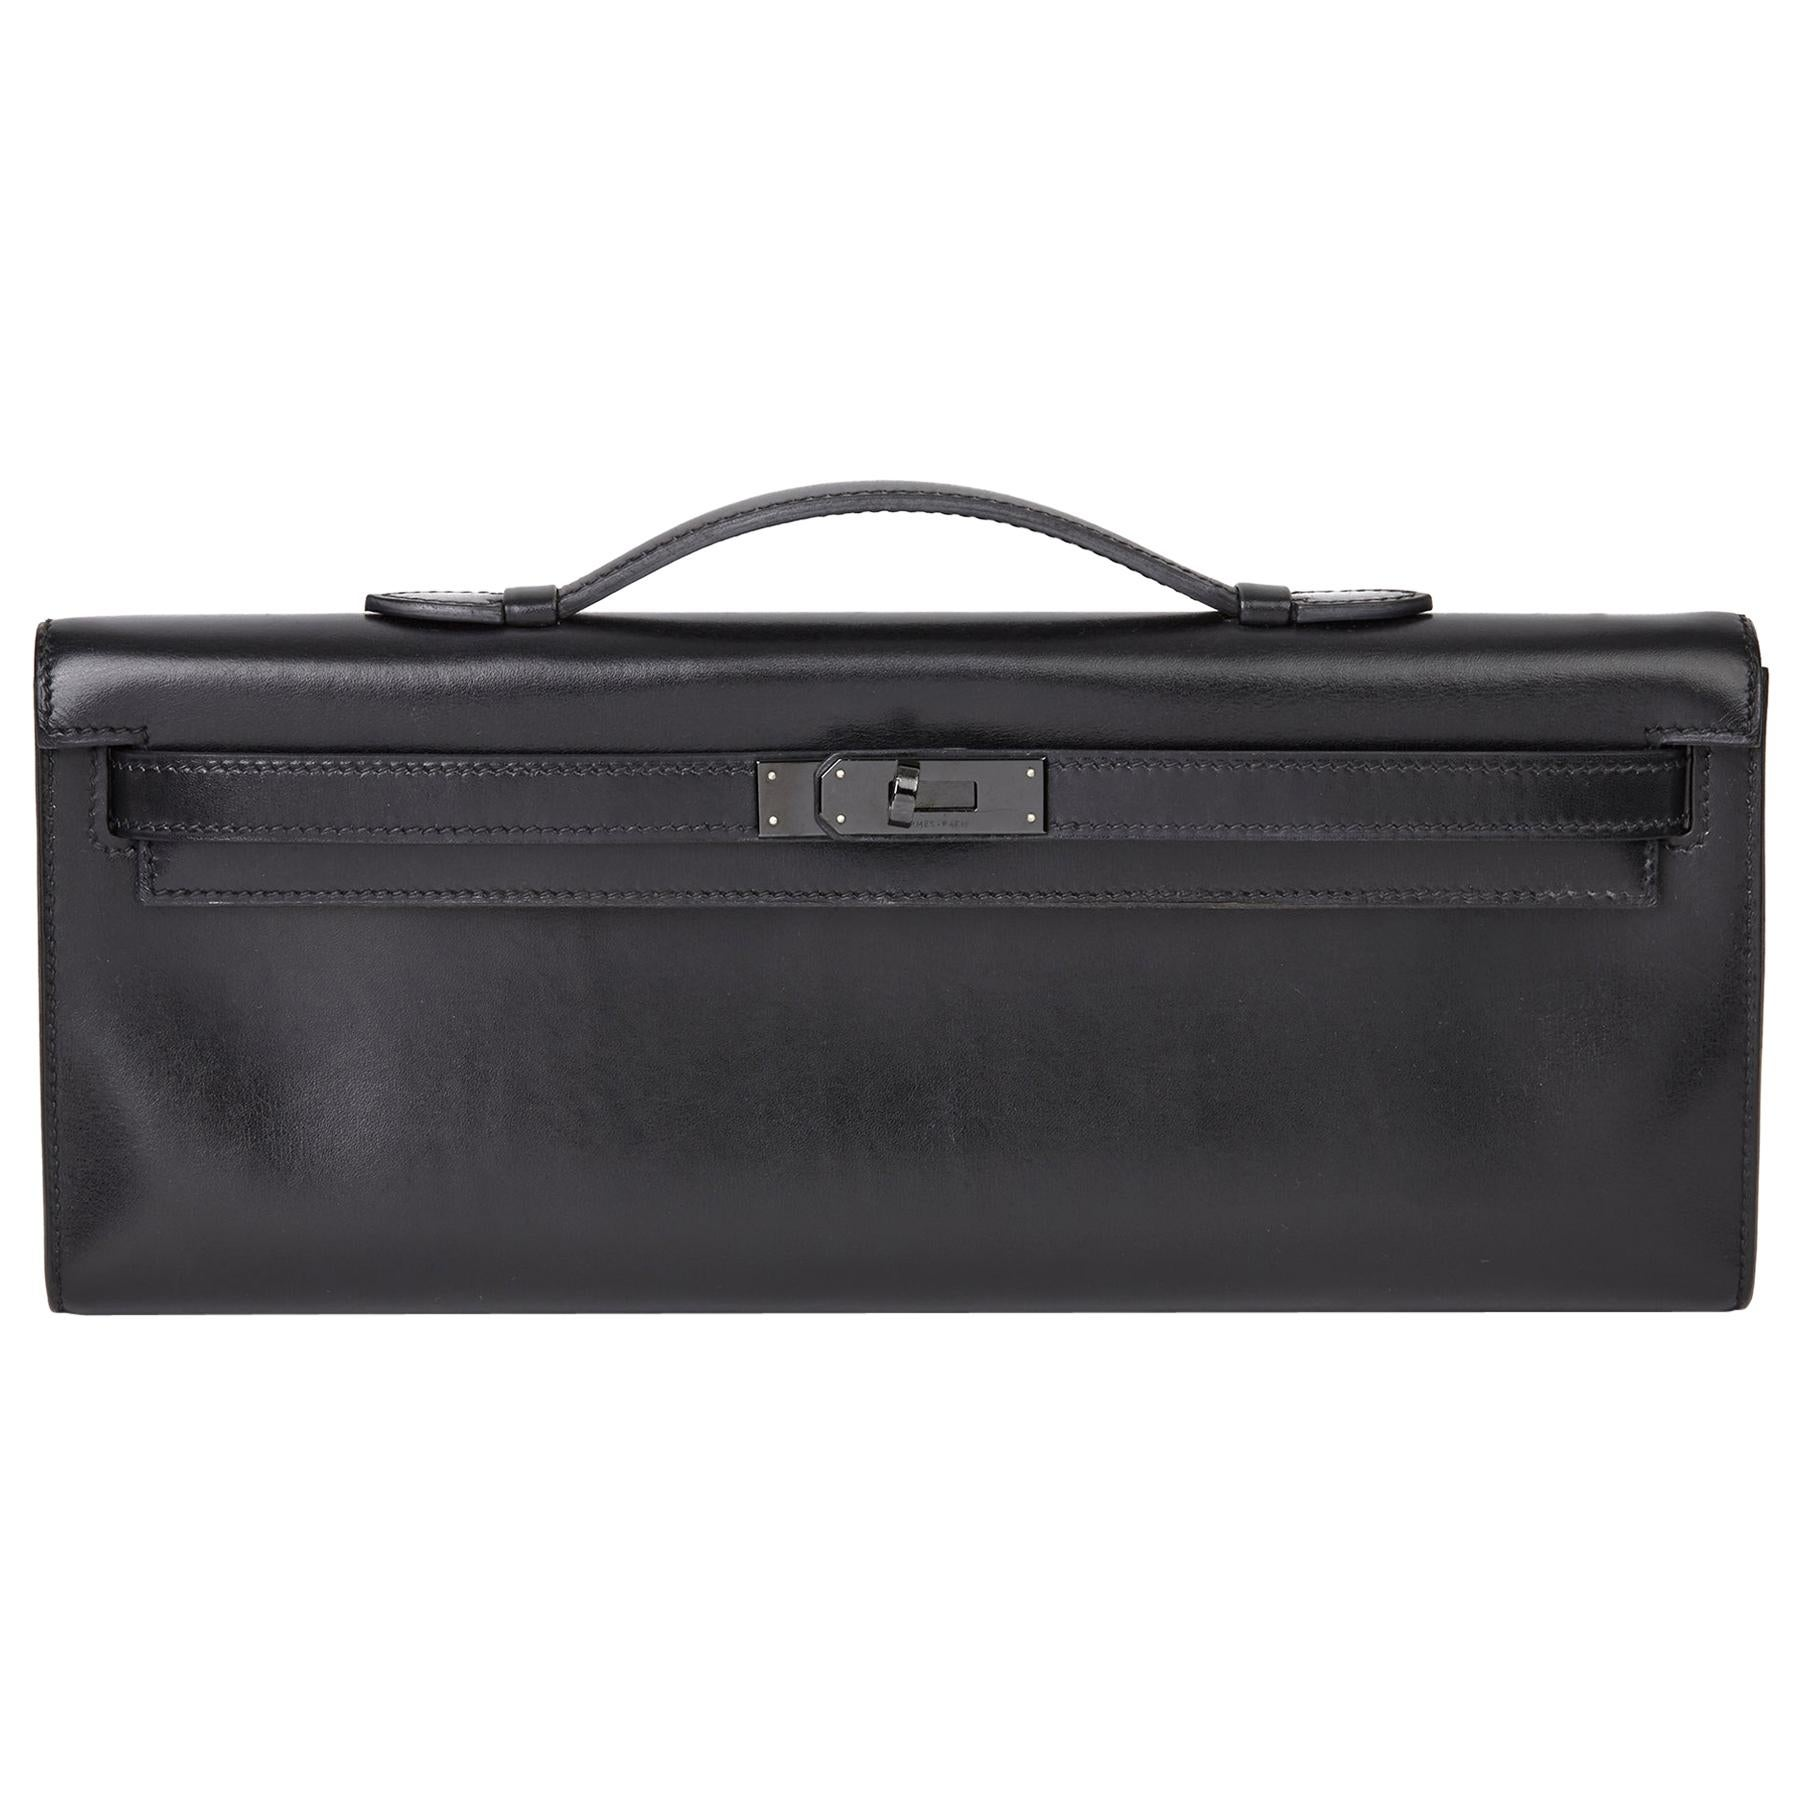 2010 Hermès Black Box Calf Leather SO Black Kelly Cut